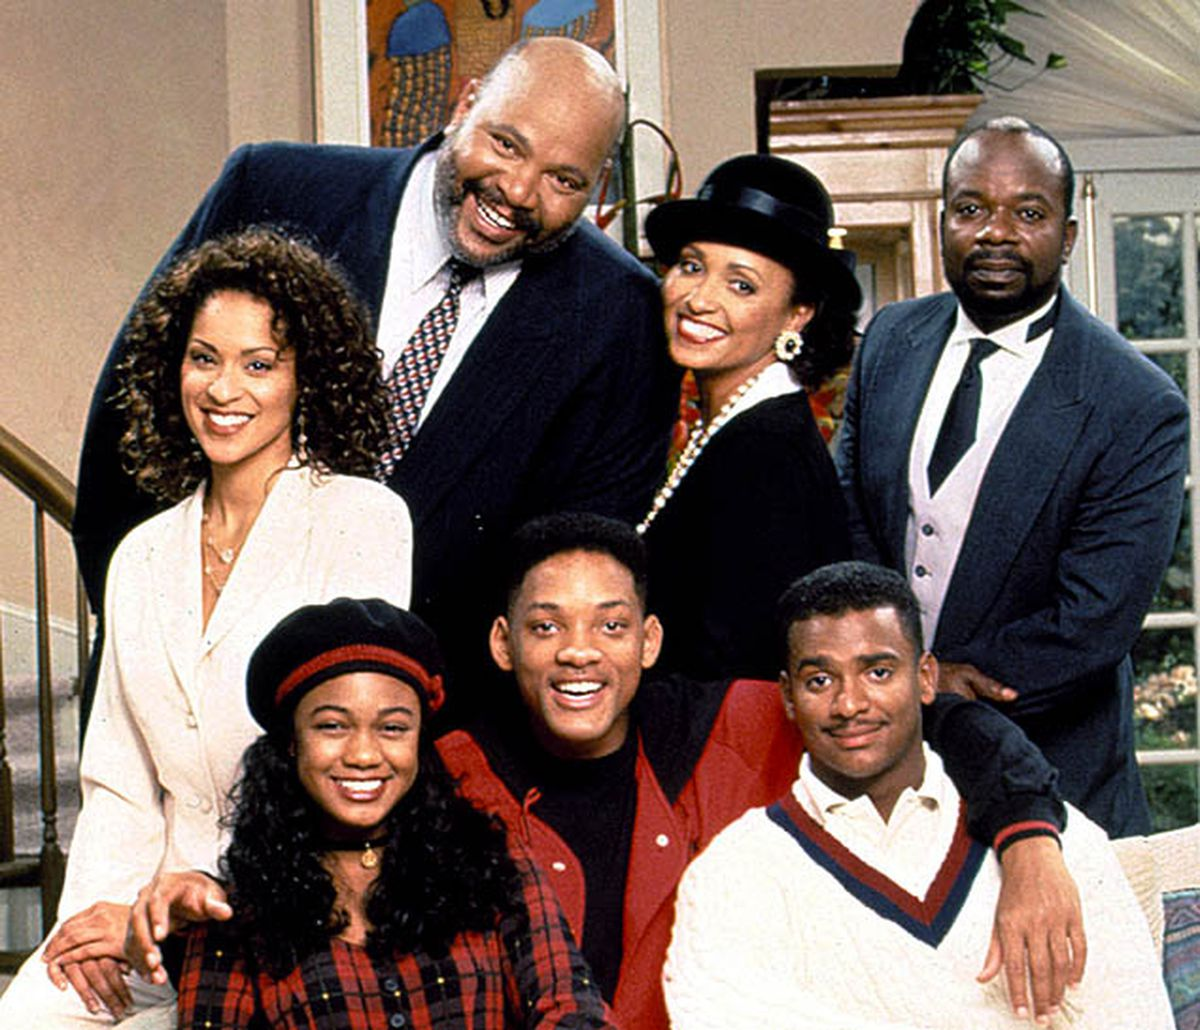 MMRPR4MECQLF3FNUYTNLBART5Q 20 Things You May Not Have Realised About The Fresh Prince Of Bel-Air